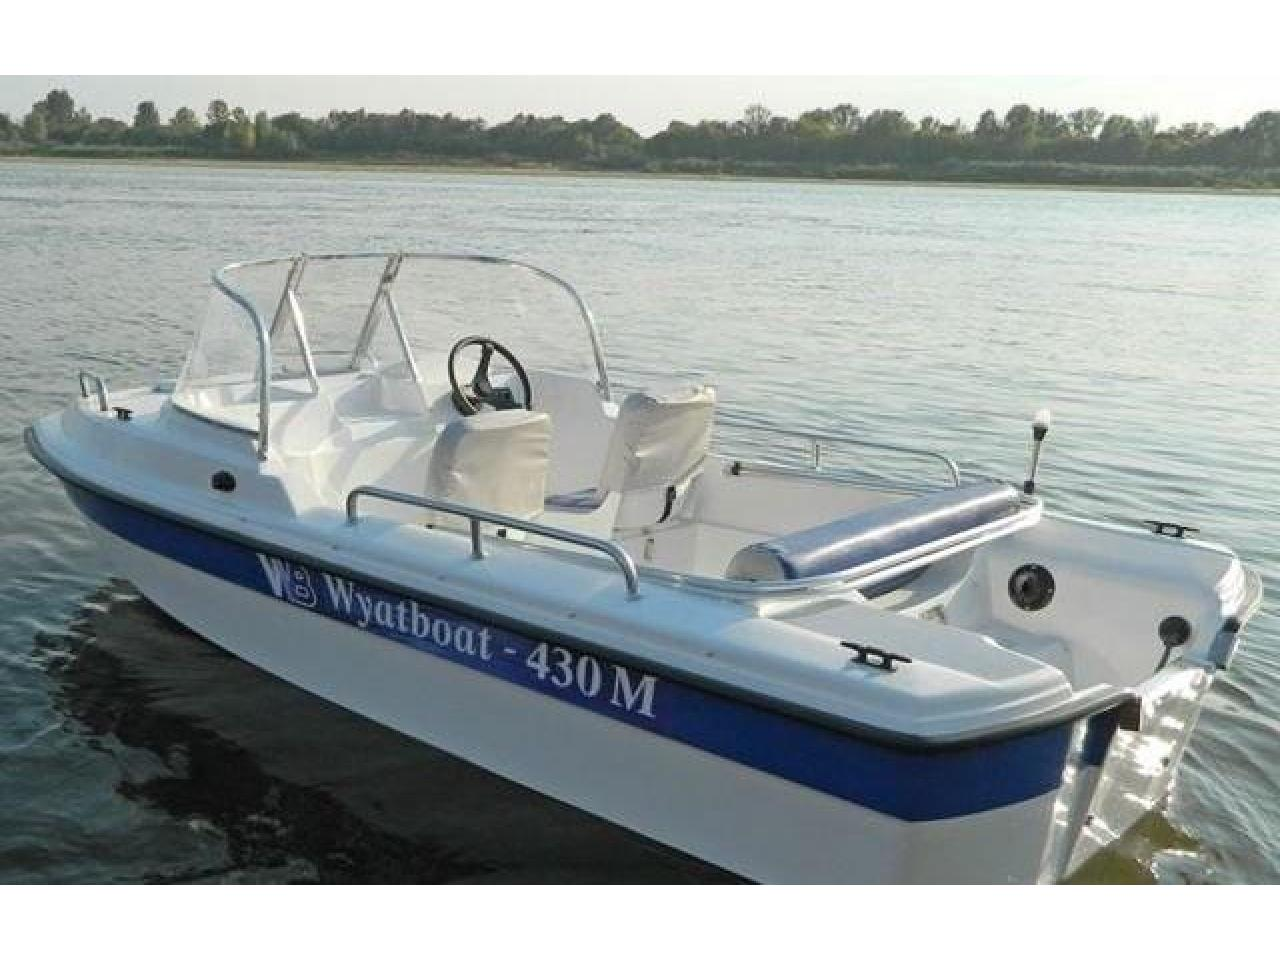 Новый катер Wyatboat 430M тримаран - 2/8